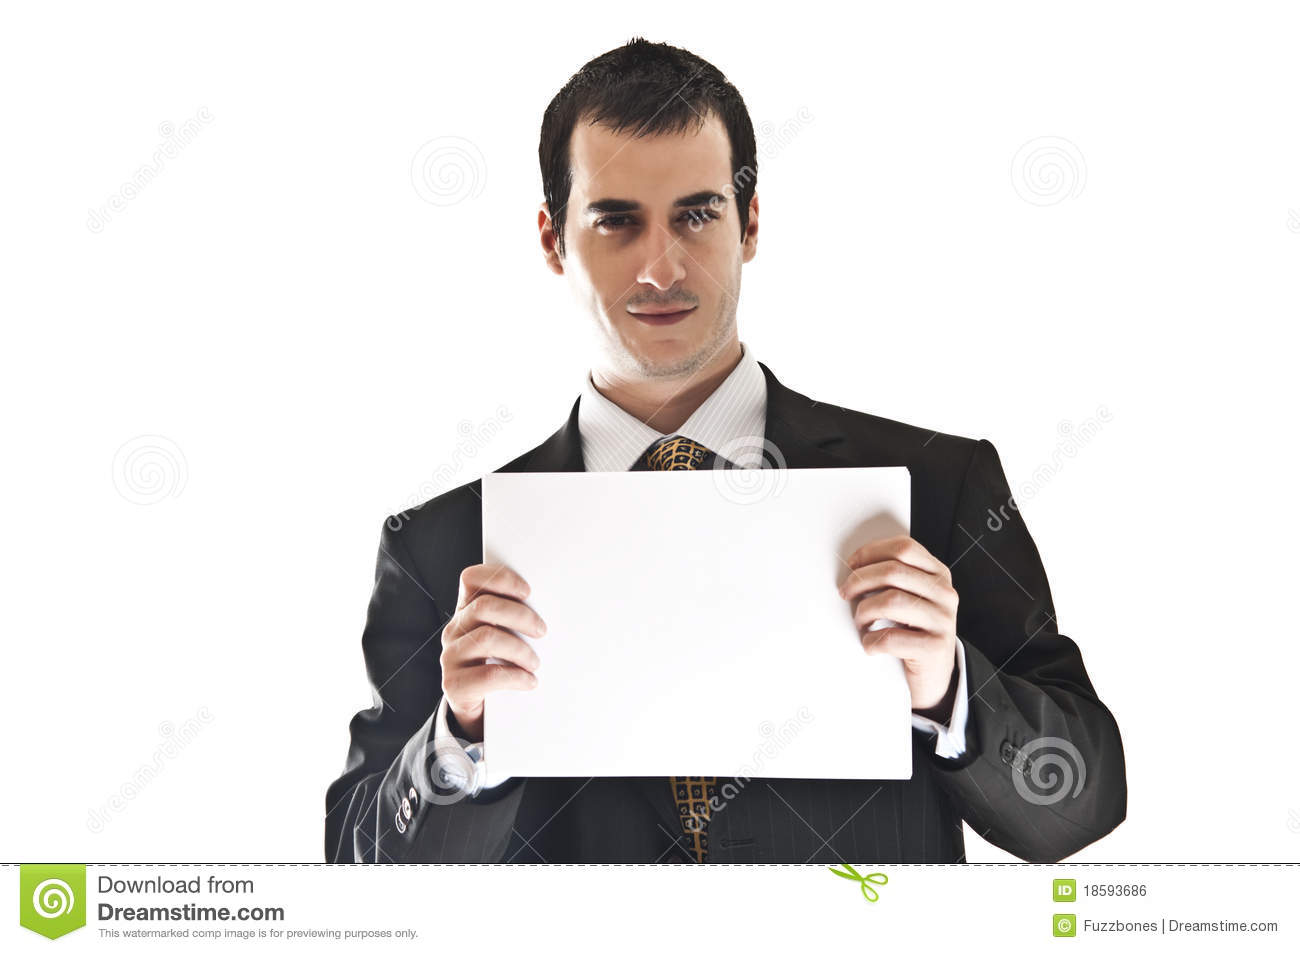 business-man-hold-paper-18593686.jpg